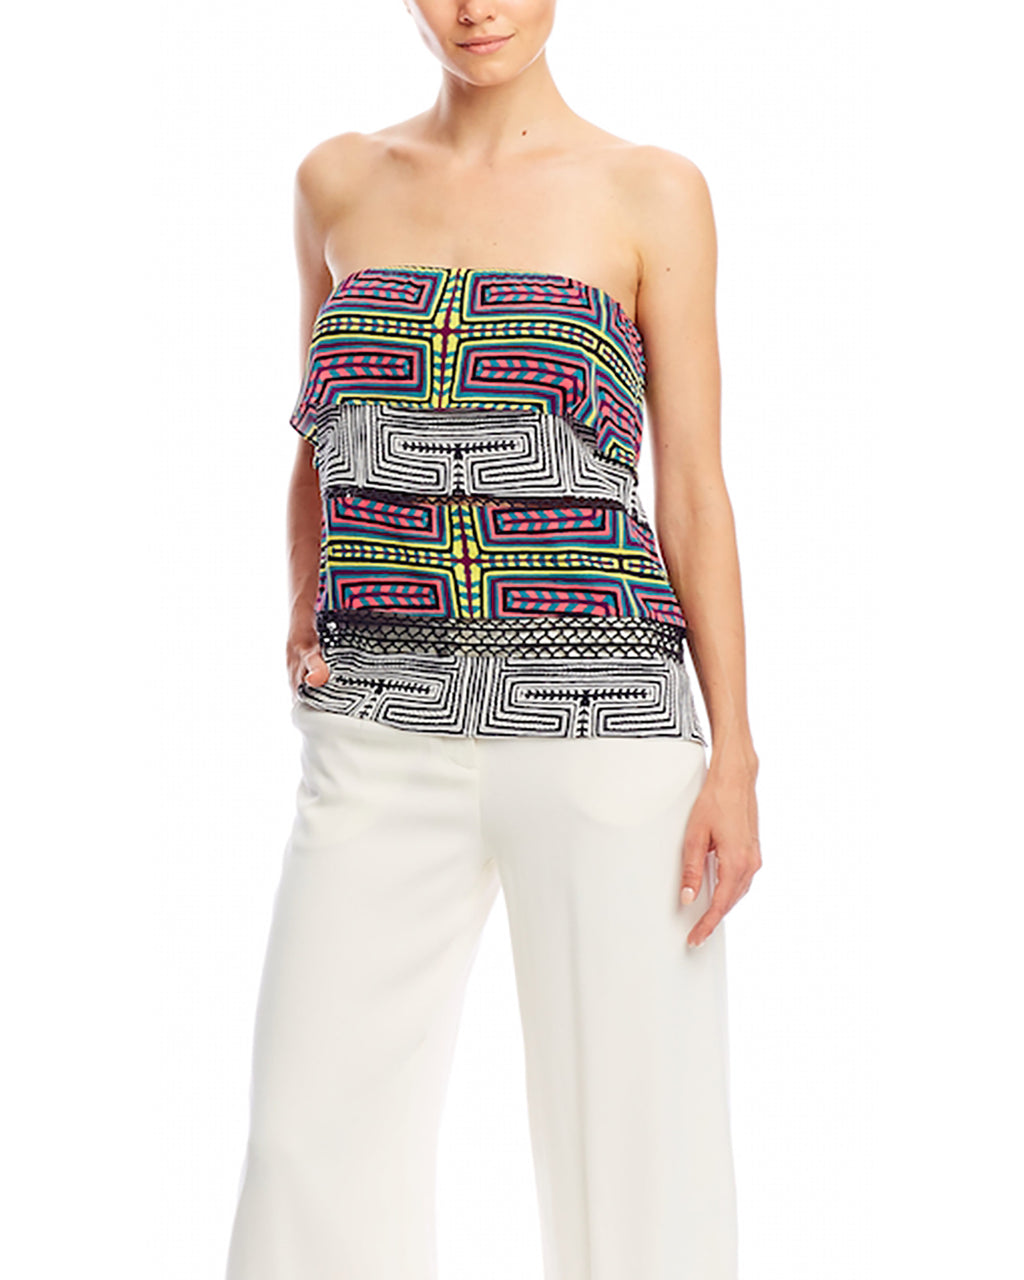 BH10215 - MOLA MAZE COMBO STRAPLESS TOP - samples - tops - Fashion labyrinth. This strapless top is an easy choice for a rooftop party or summer lunch. Pair with our Mola Maze Combo Pencil Skirt. Back zipper for closure. Final Sale